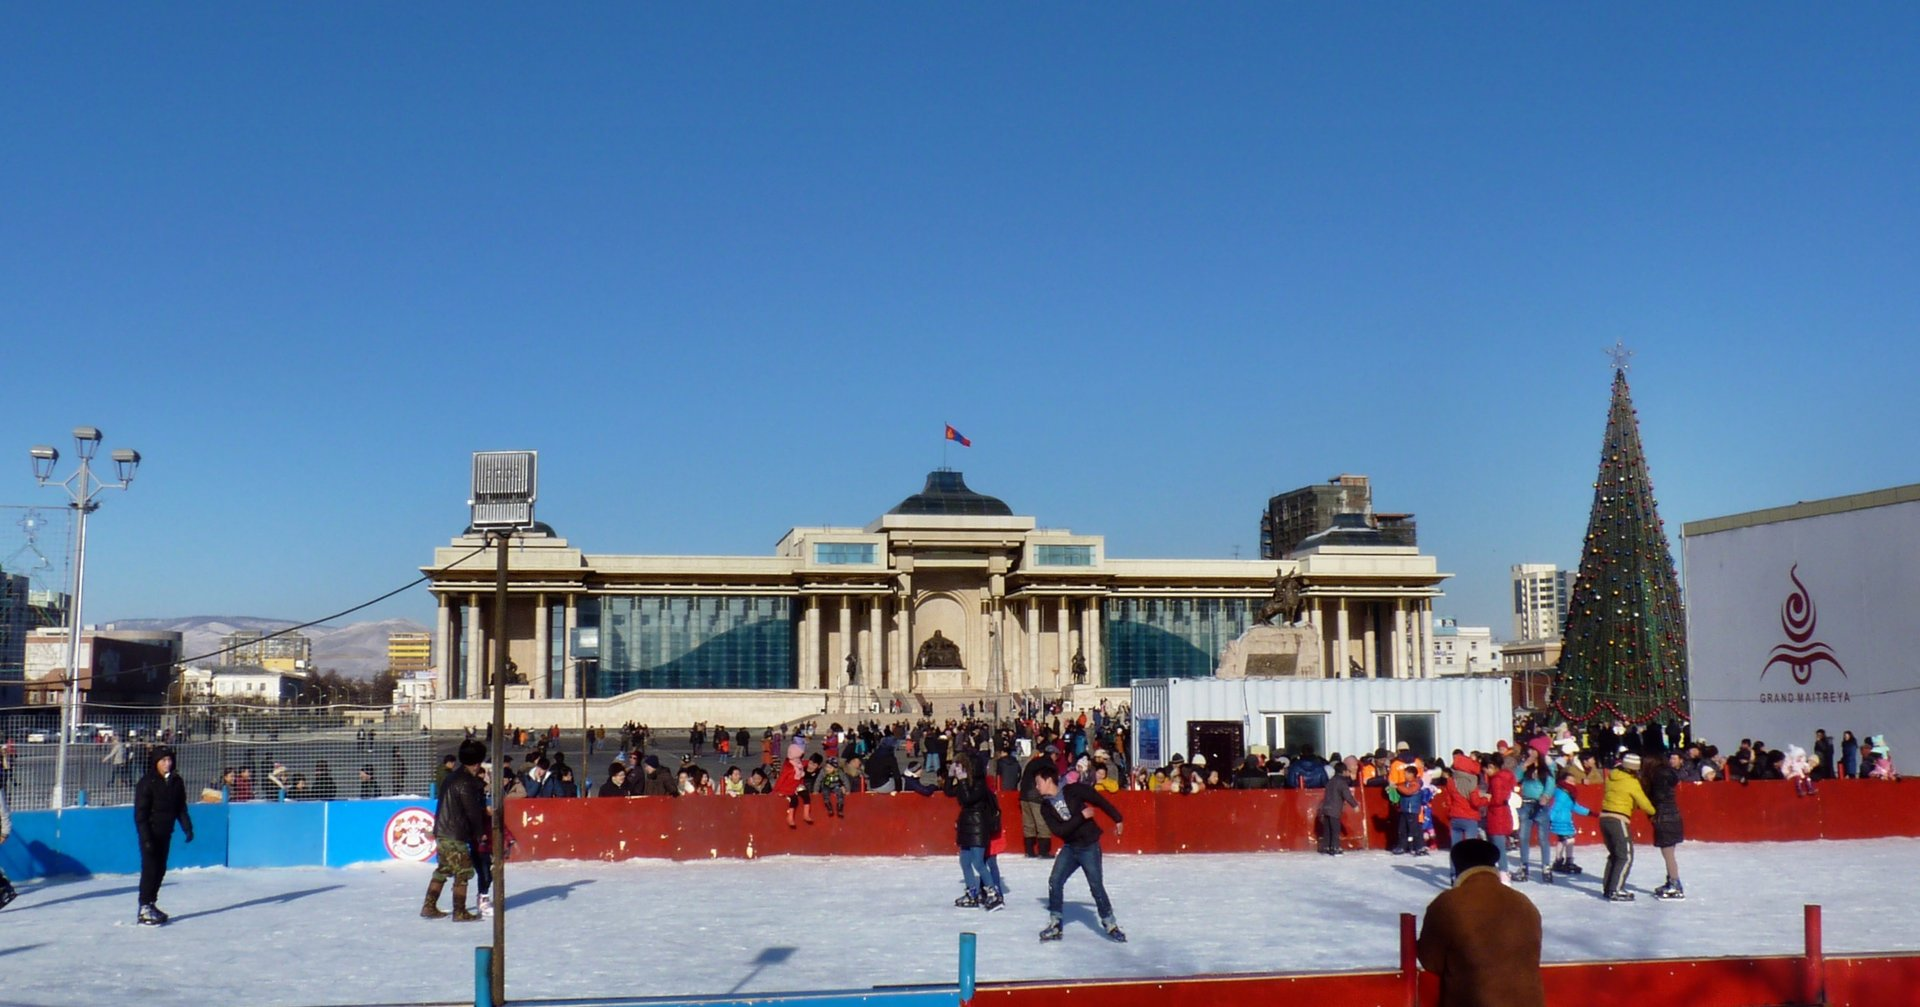 Ice Skating in Mongolia 2020 - Best Time